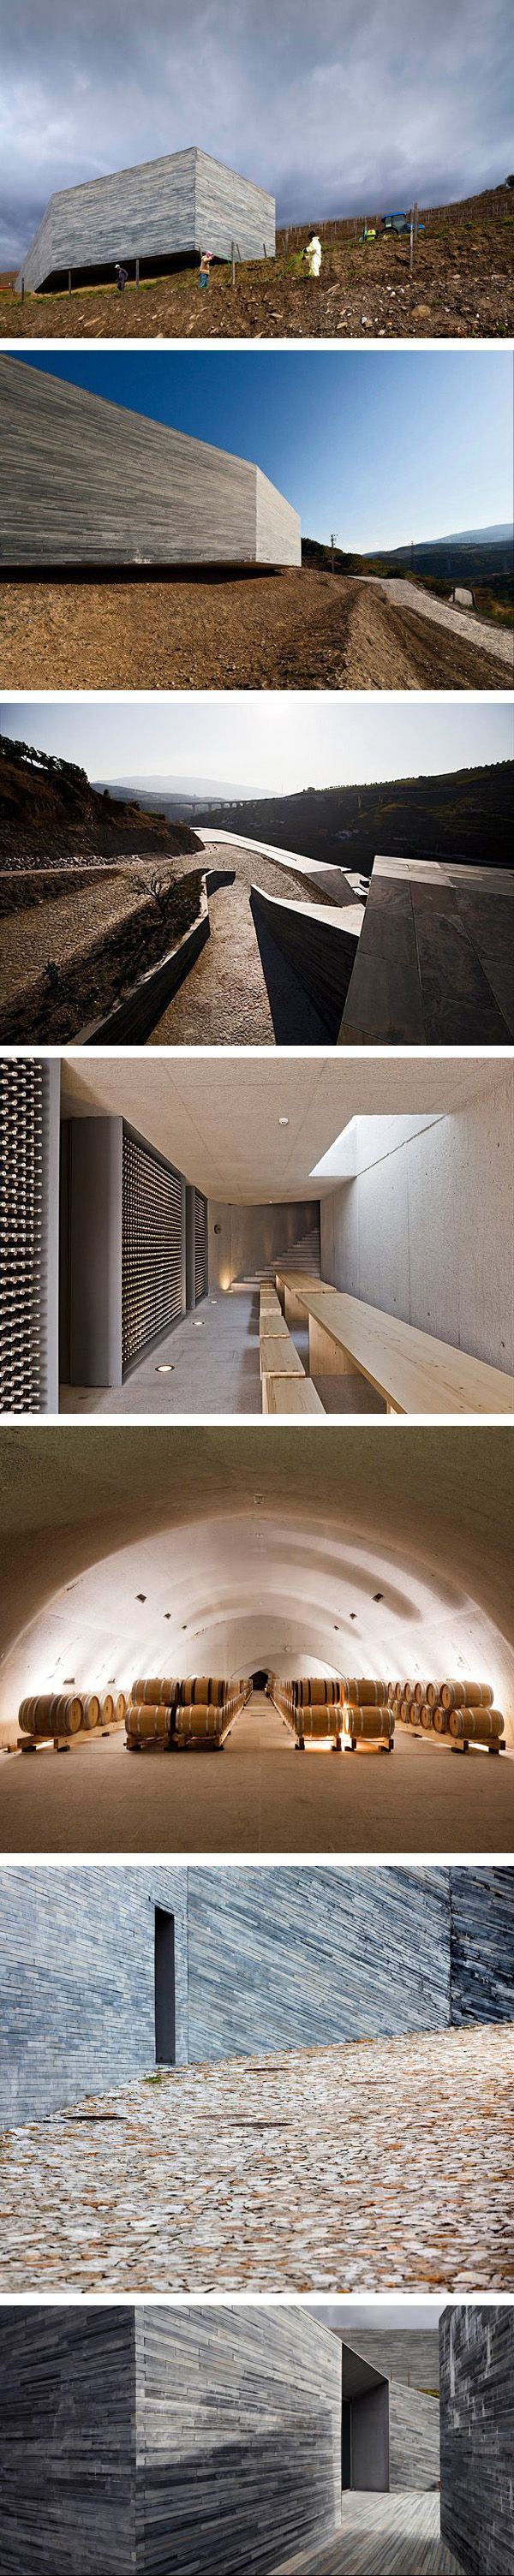 Superb use of materials and volume in Bodega Quinta Do Vallado, Portugal